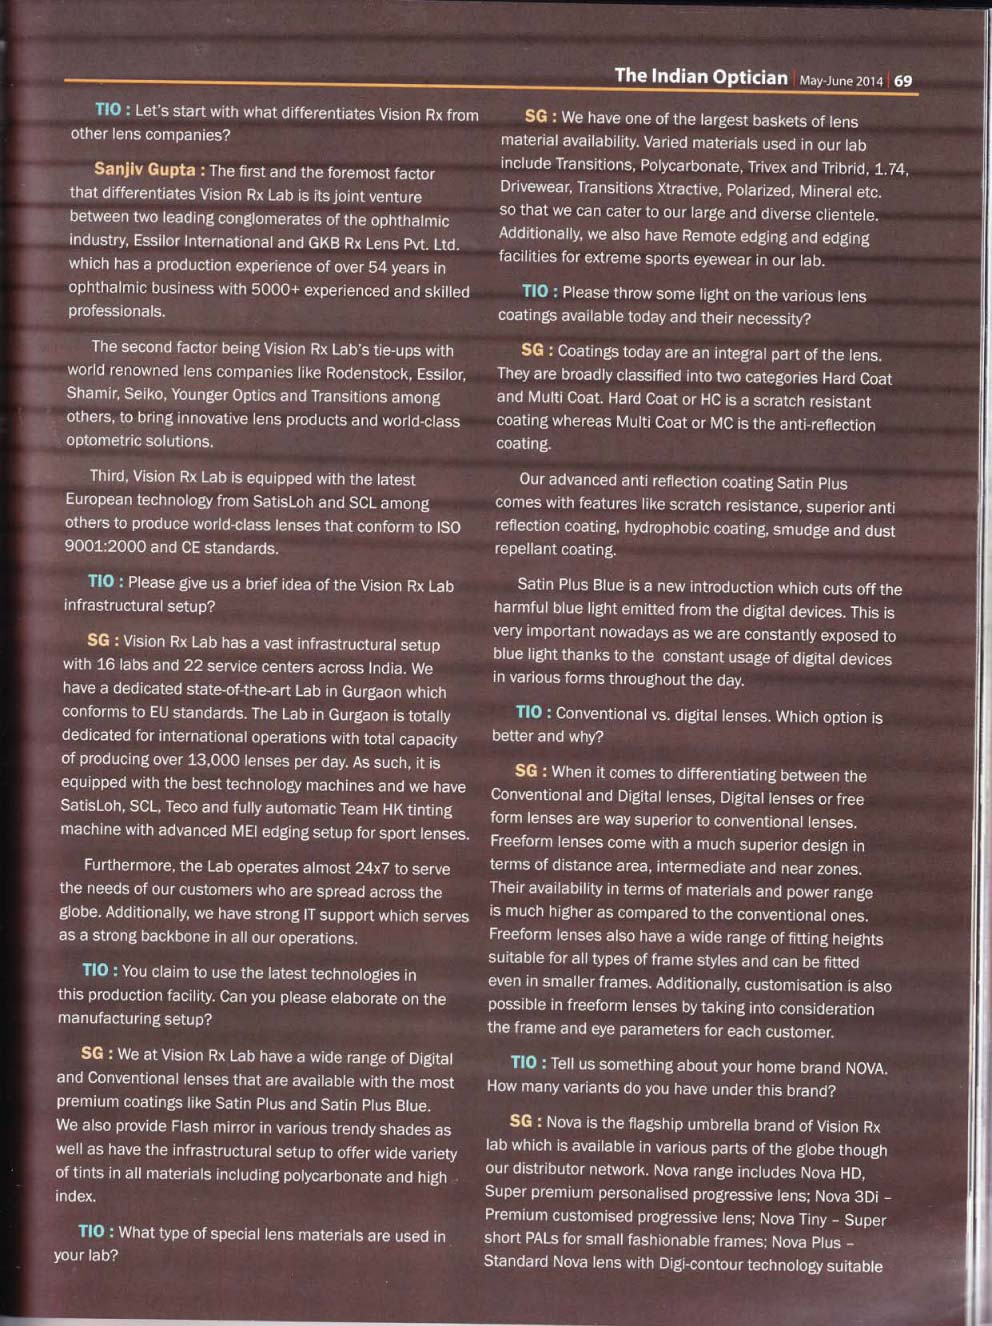 The Indian Optician page 4/6